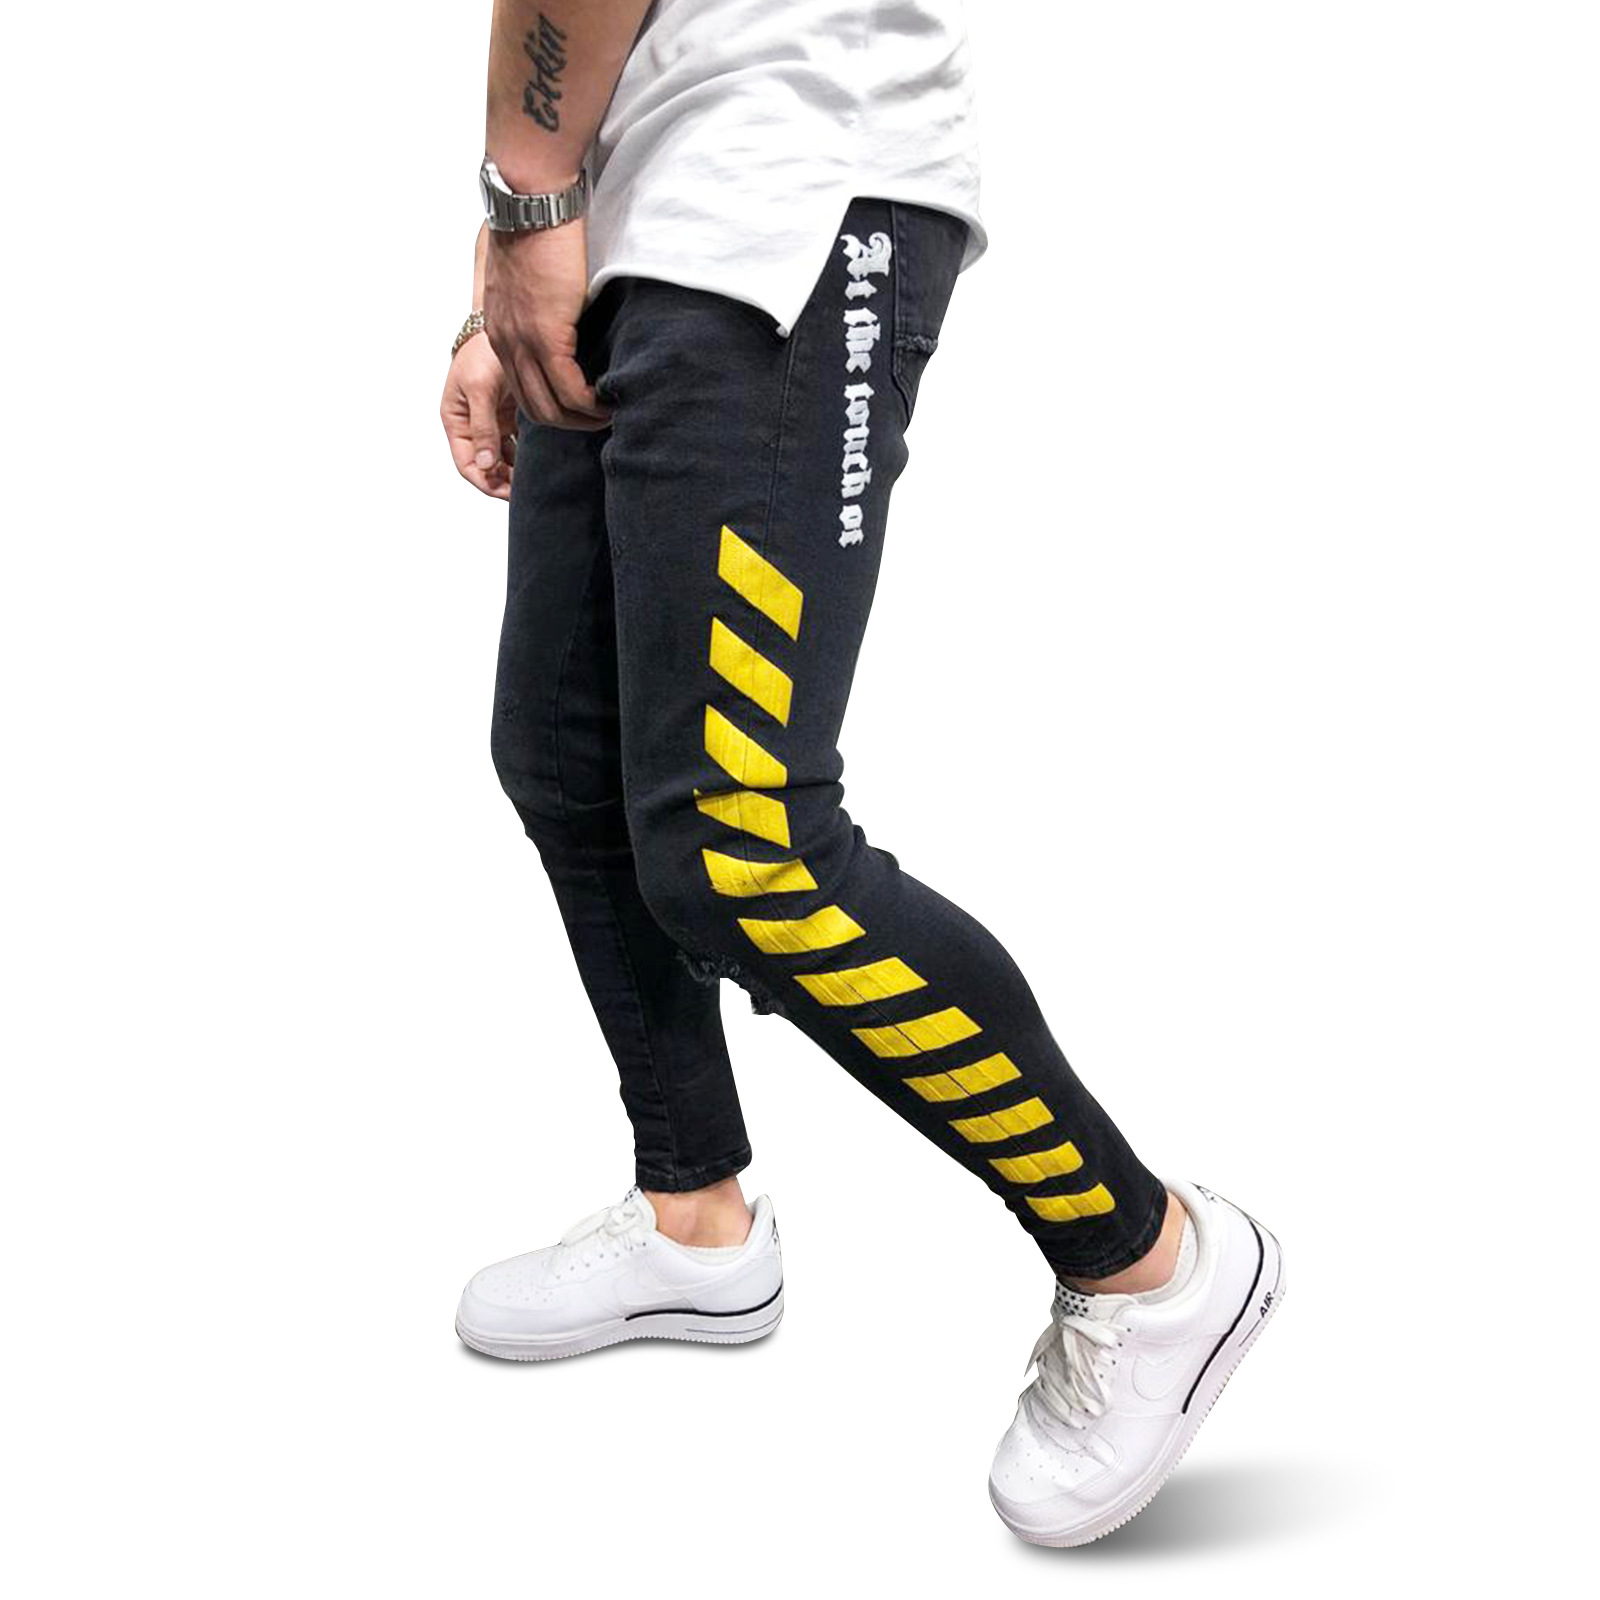 Men's Side Striped Skinny Slim Fit Ripped Distressed Stretch Jeans Pants